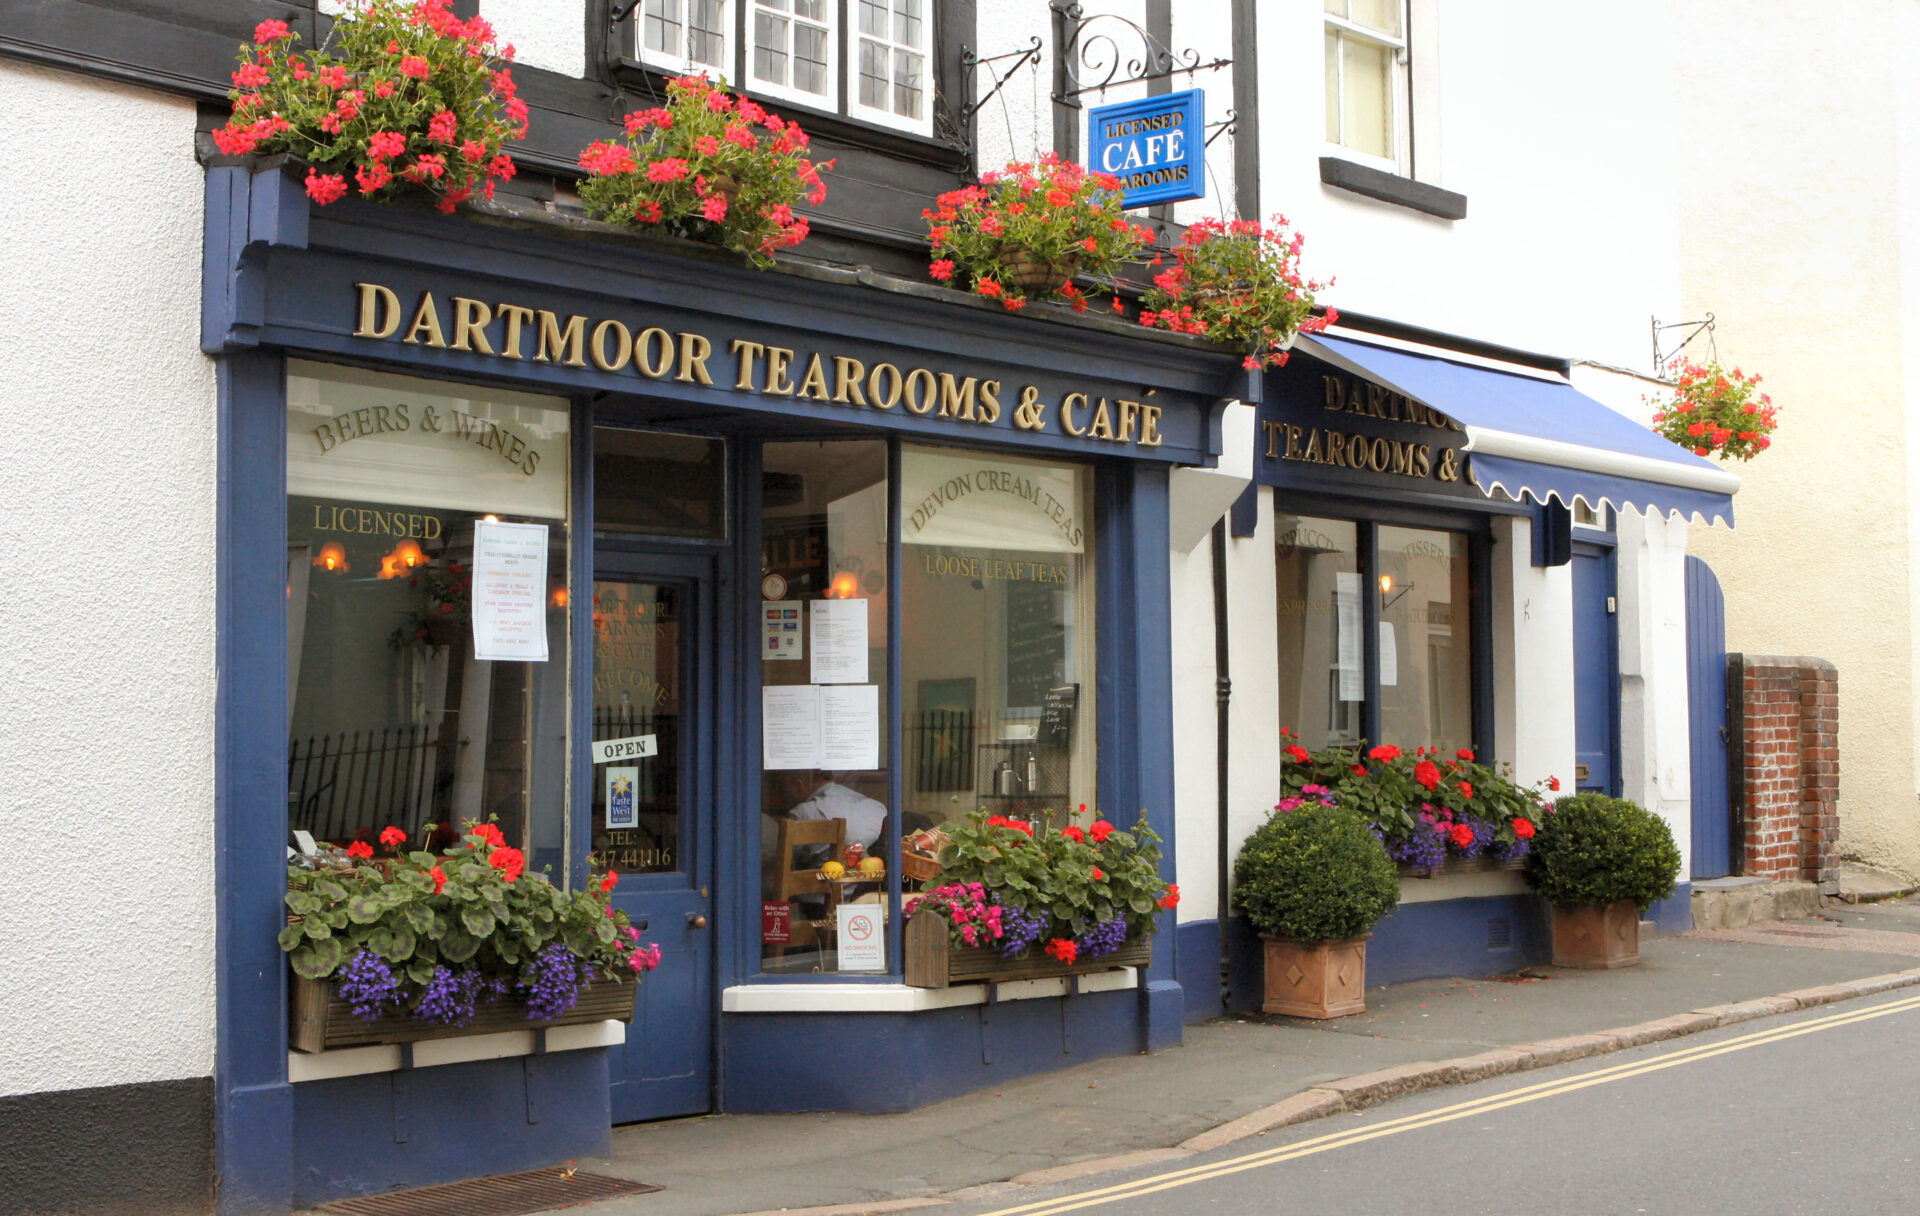 The Dartmoor Tearoom, where George made THE BEST cream teas in Devon. Sadly it's closed now. We miss it.